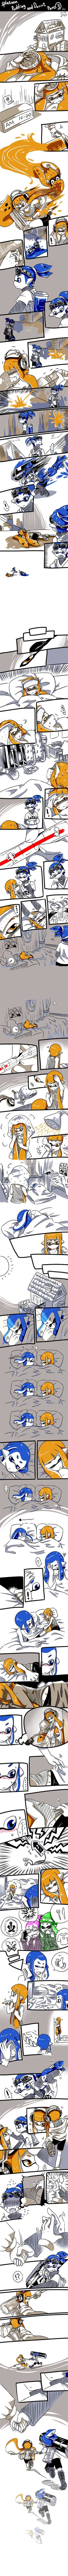 [Splatoon] Pudding and Donut long comic part3 by zzoza